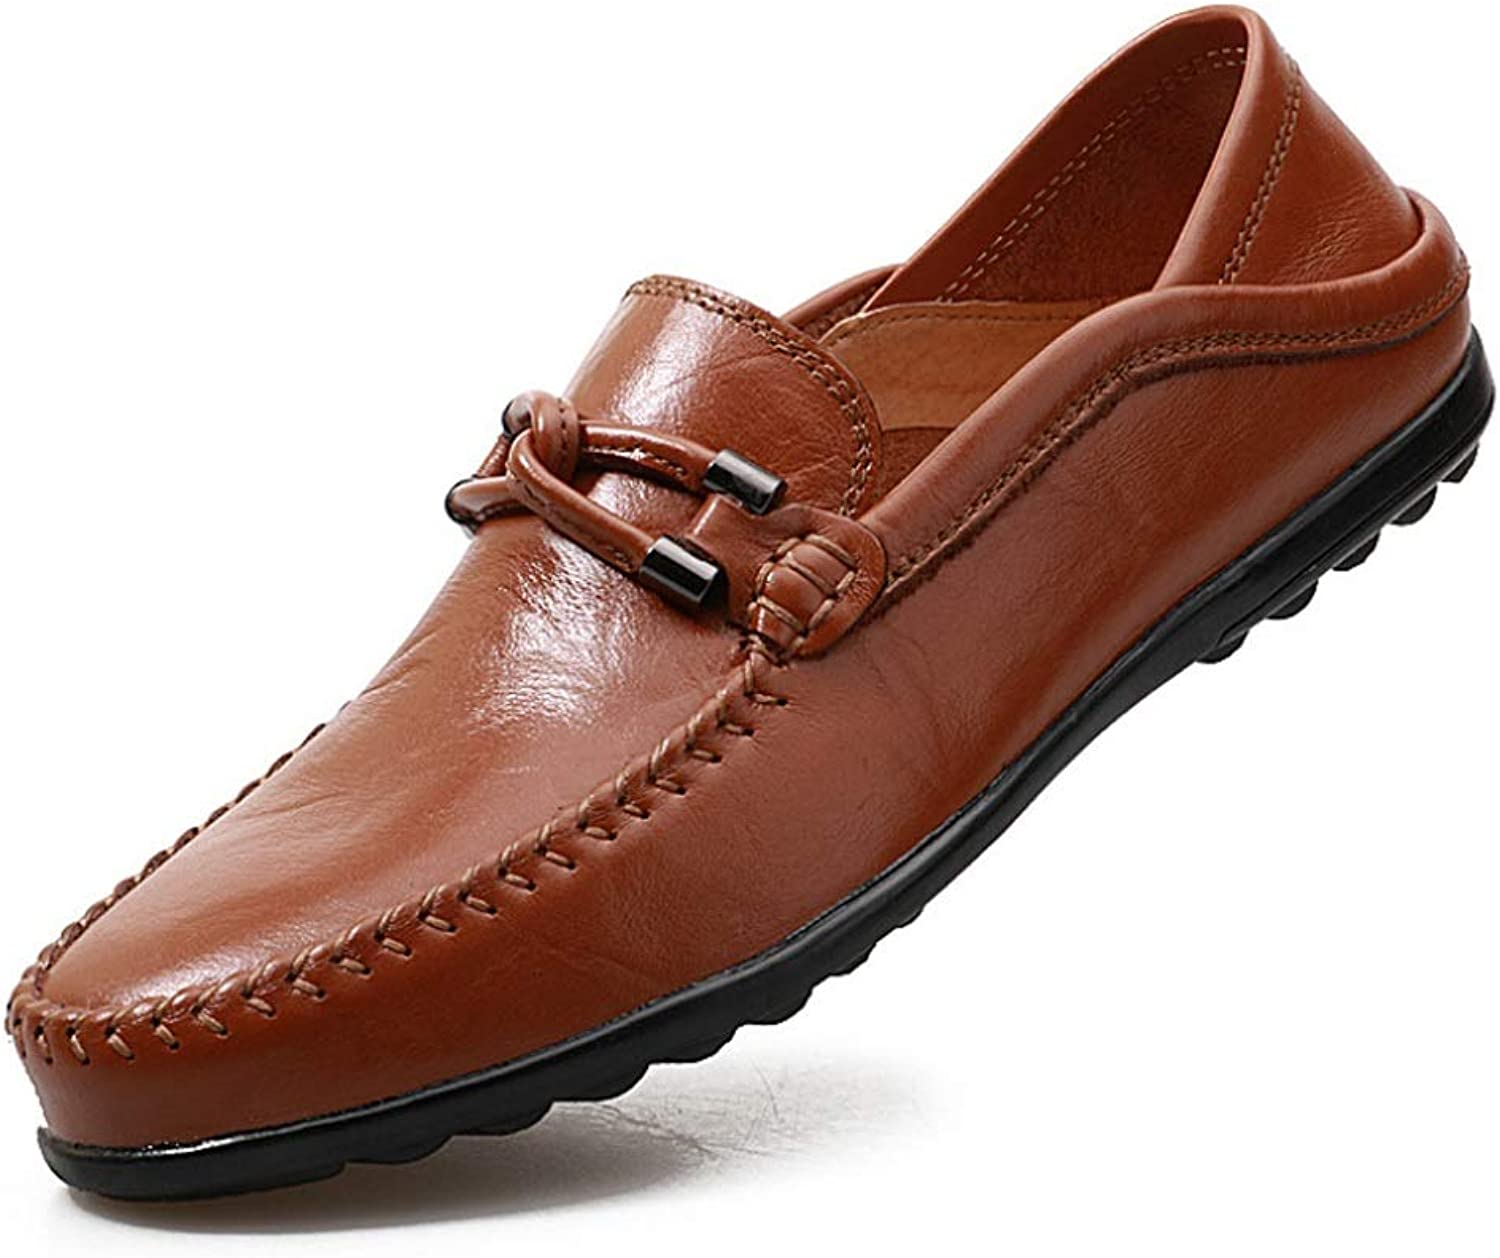 Men's Leather Low Cut shoes Comfort Flats Business shoes Boat shoes Driving shoes Loafer Flats Moccasin-Gommino